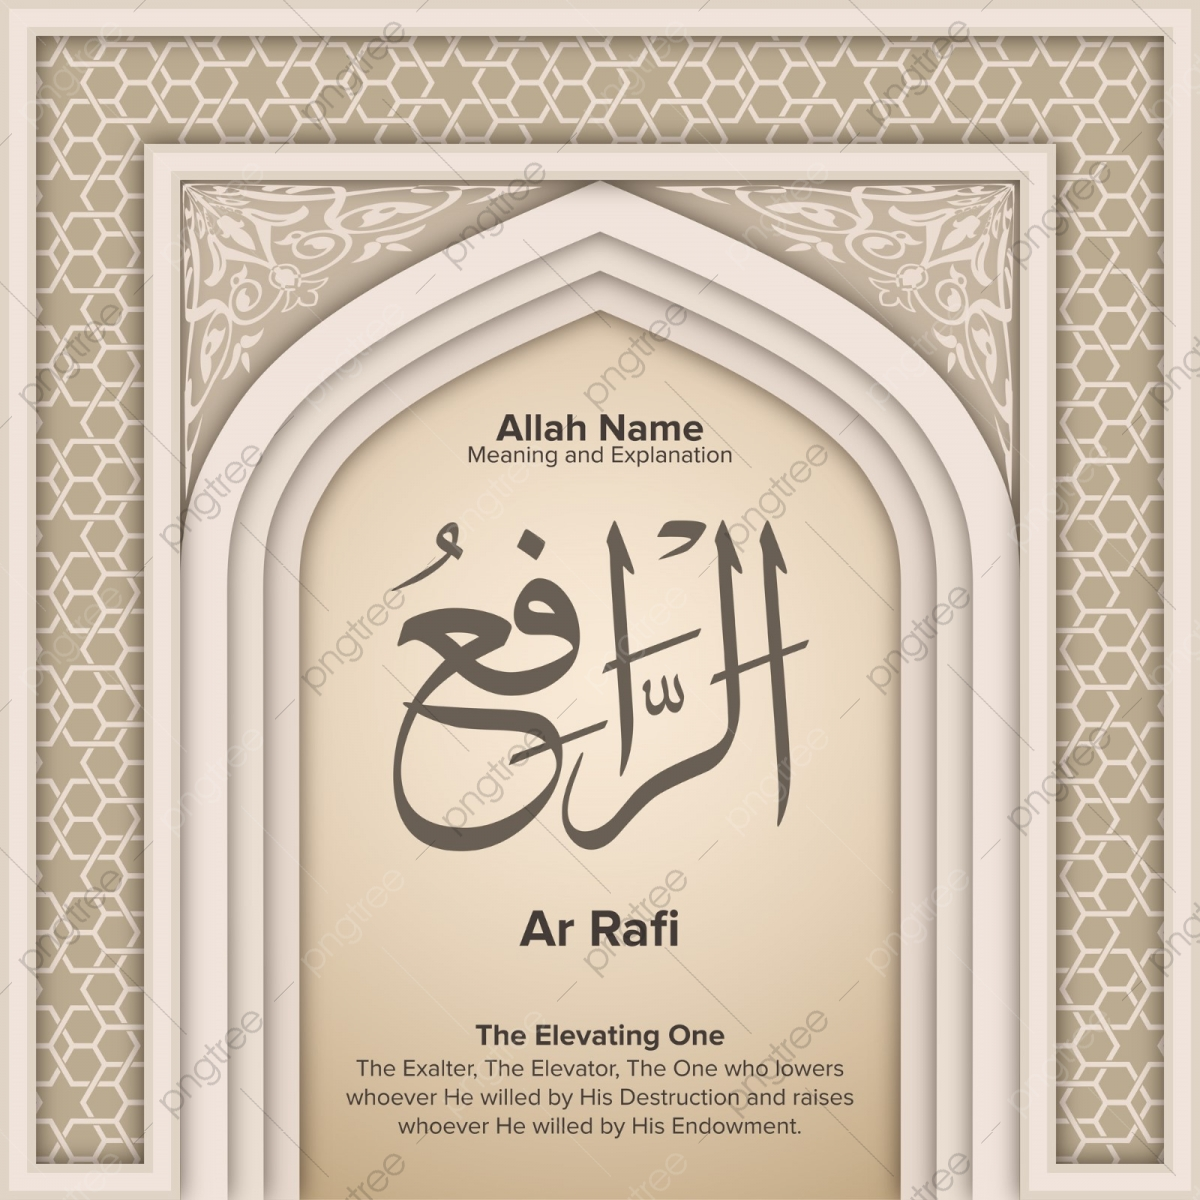 Ar Rafi 99 Names Of Allah With Meaning And Explanation, Al